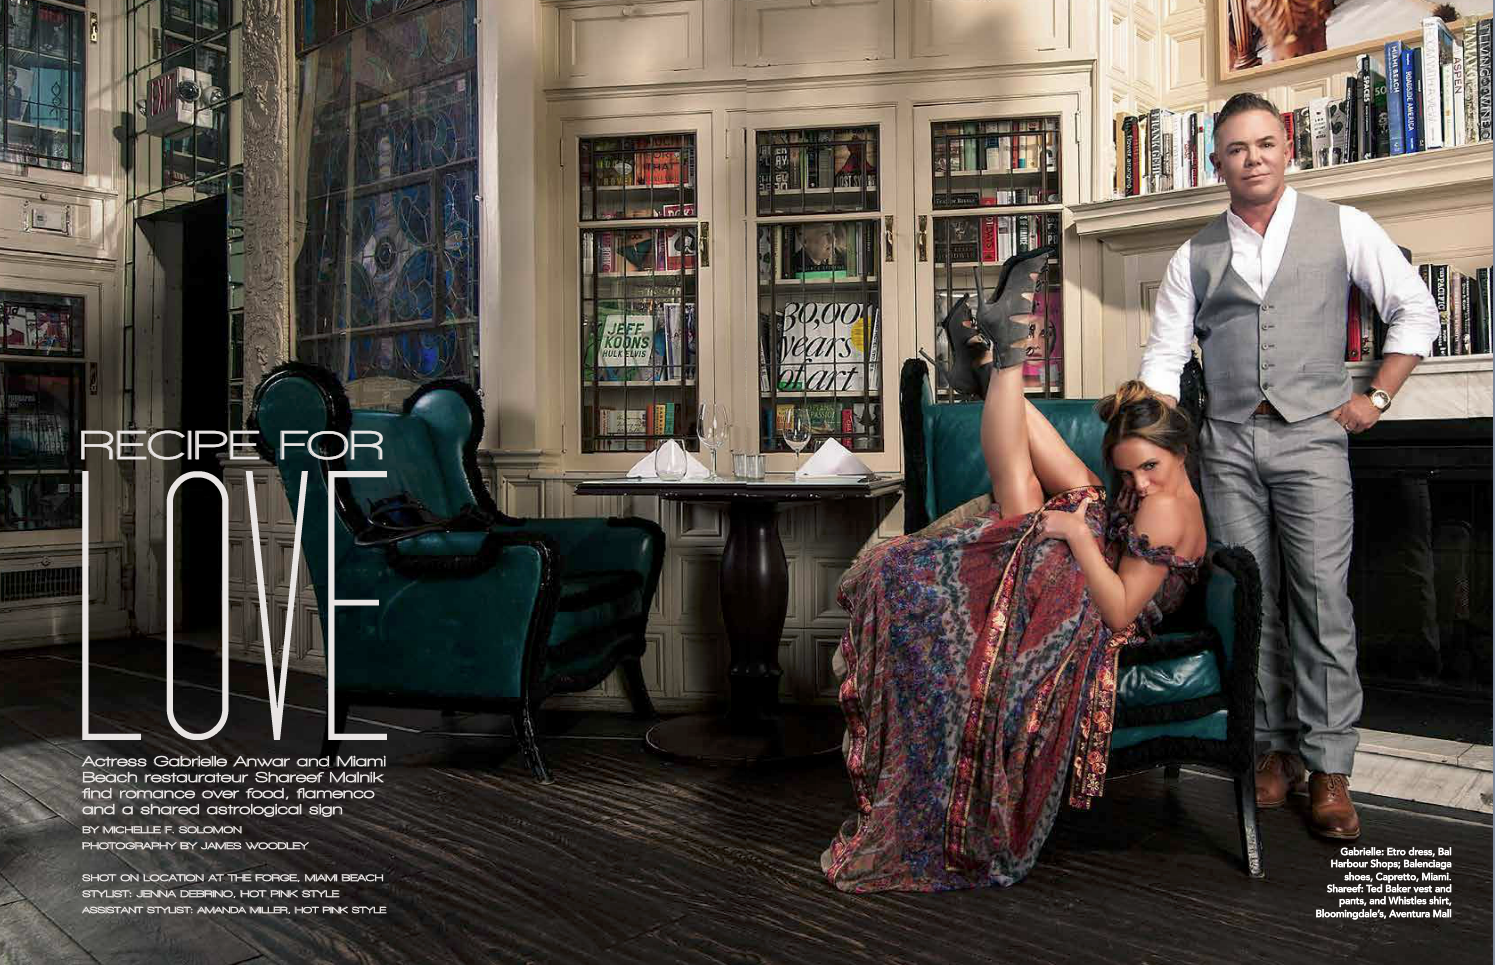 Las Olas Lifestyle Magazine - The Forge - Cover shoot - Interior 1